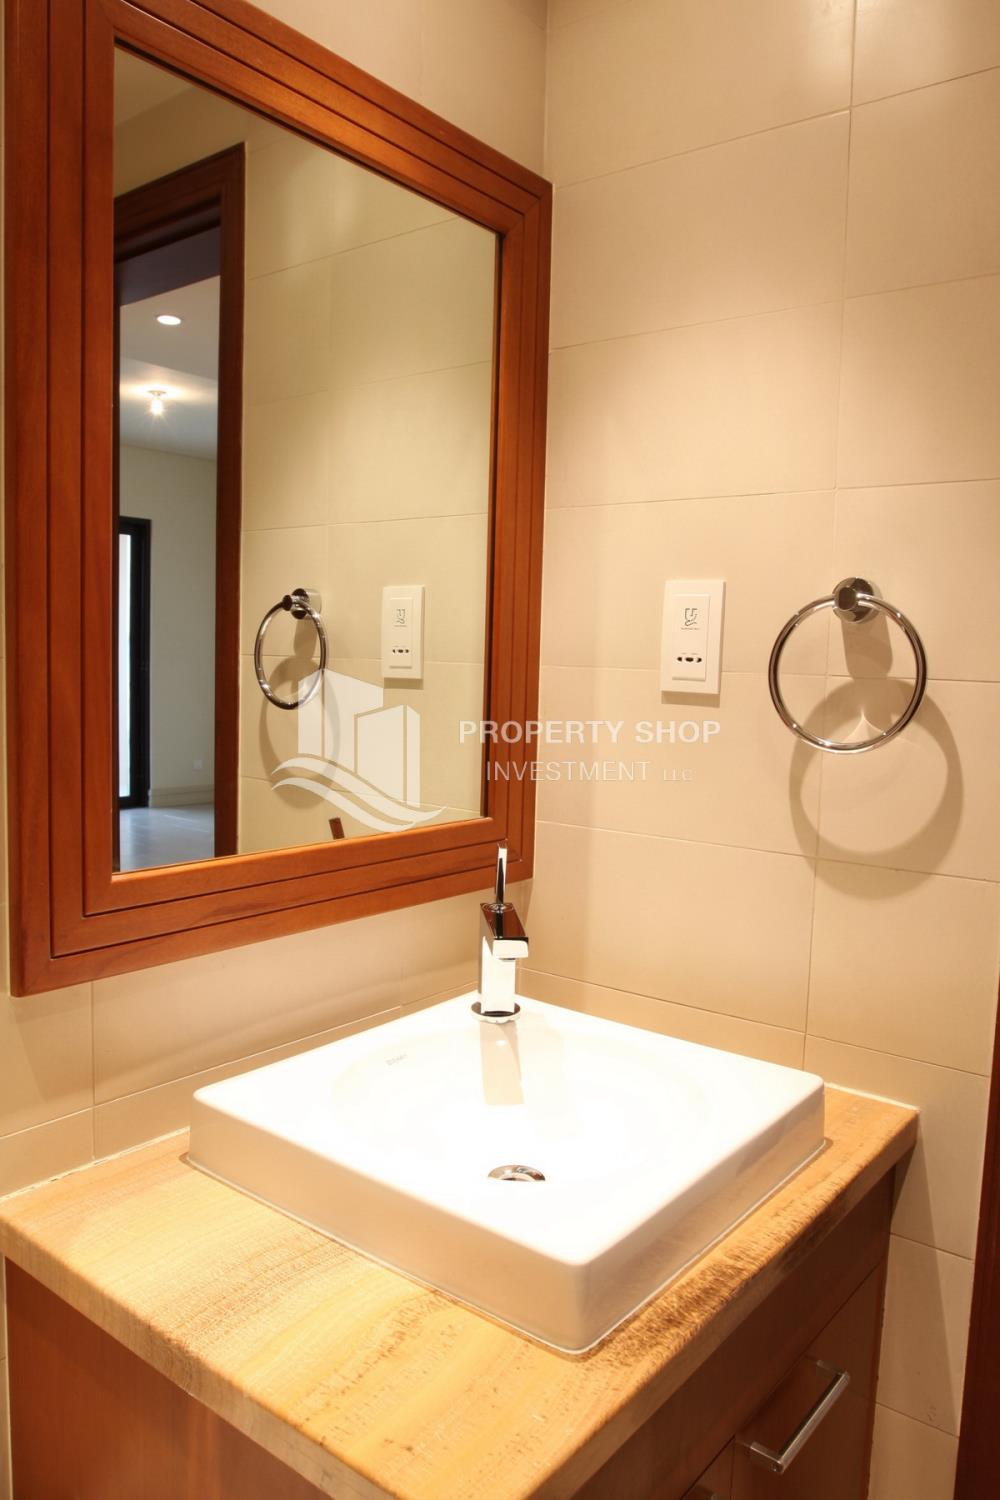 Bathroom-Beautiful and unique living spaces in Saadiyat Beach Residences, 1BR Apt Available for rent! Zero Commission!